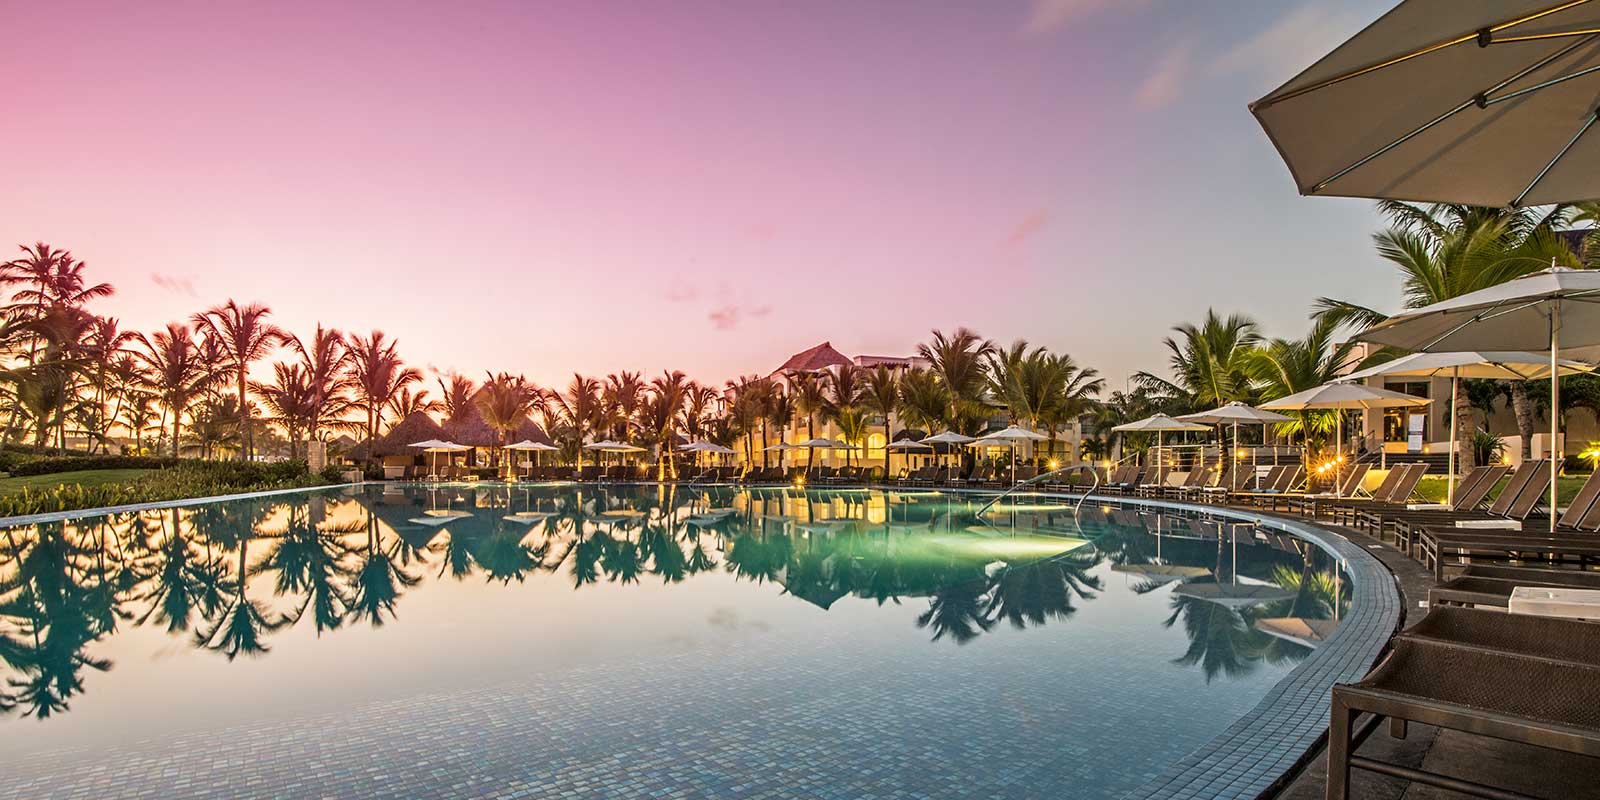 Great Deal for The Hard Rock Hotel & Casino in Punta Cana!